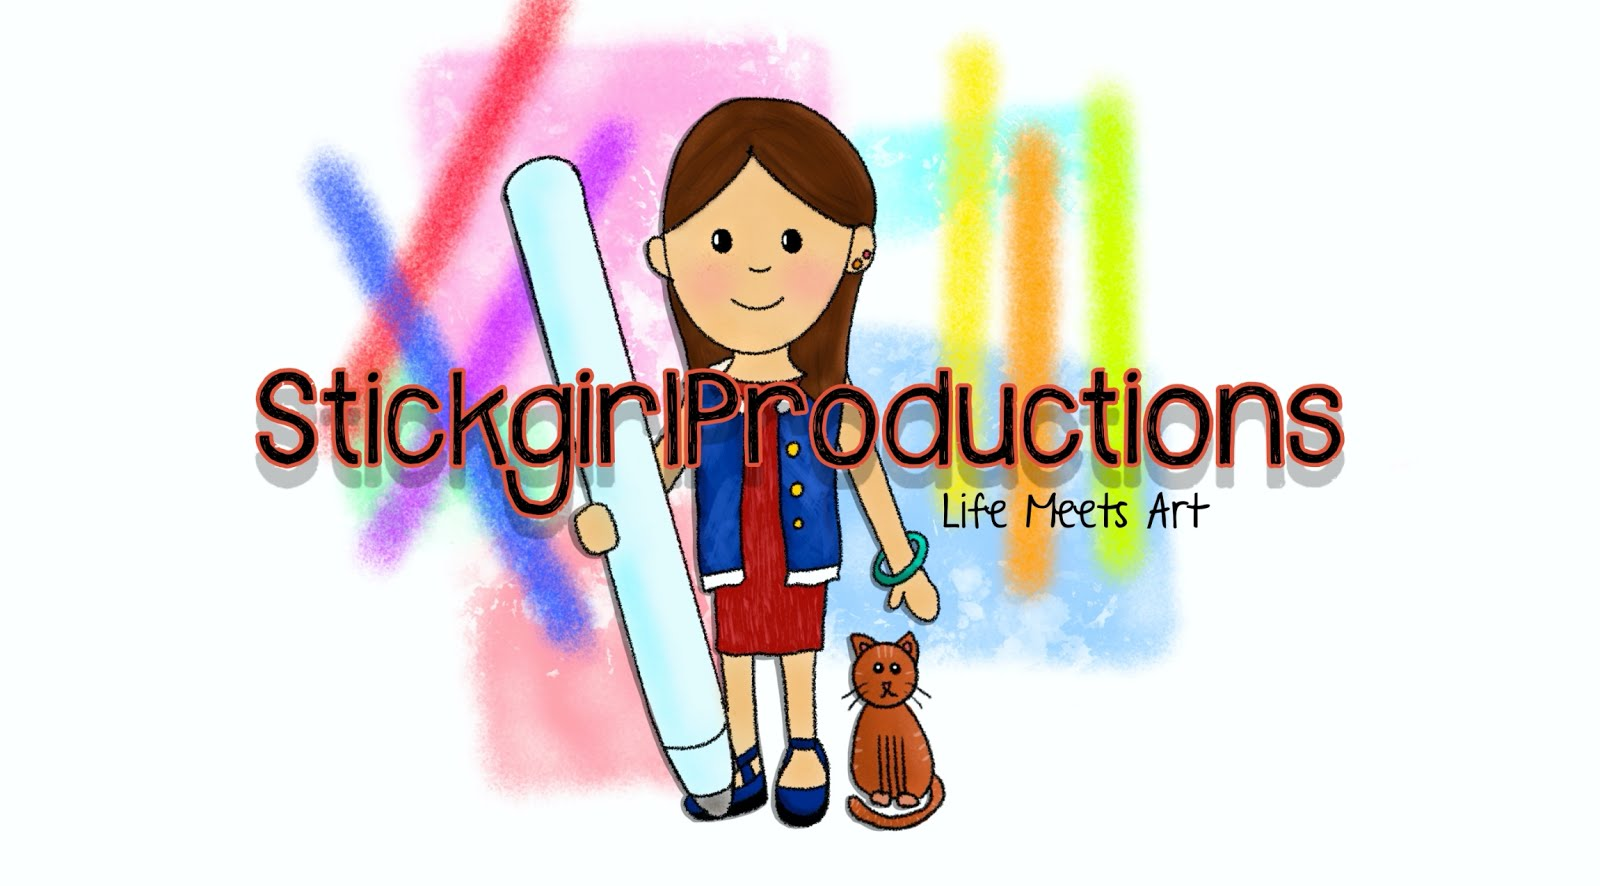 StickgirlProductions